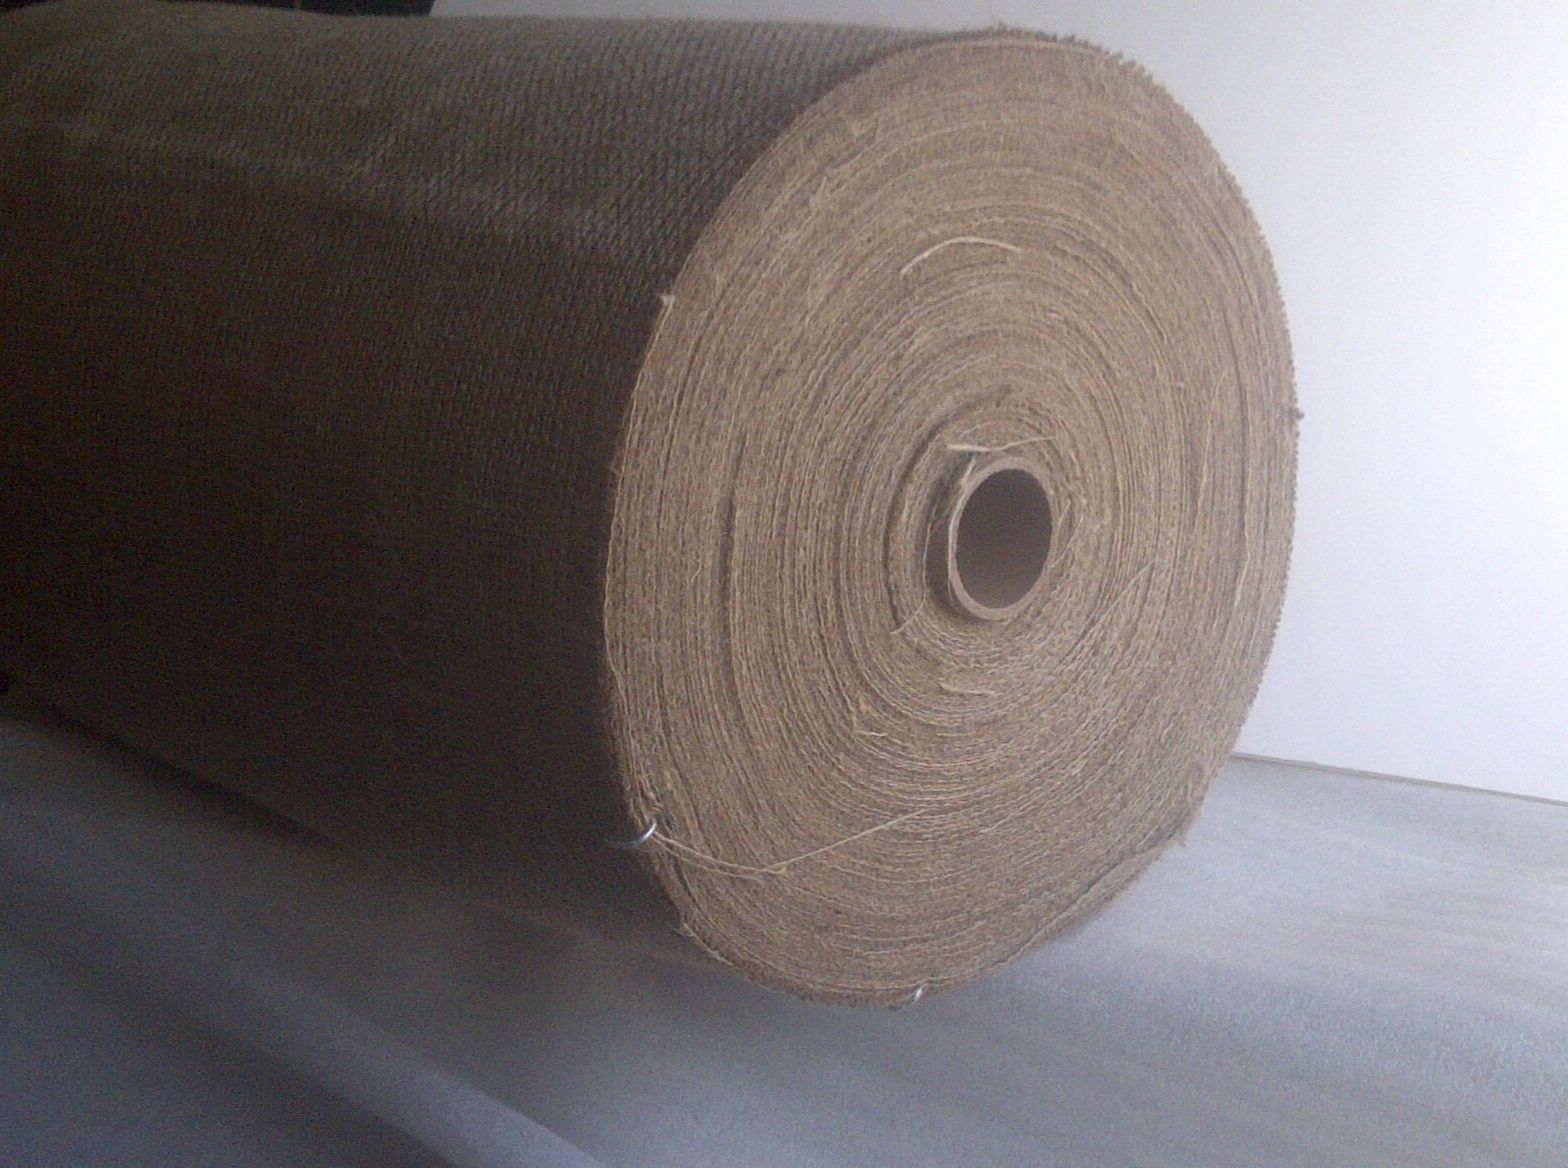 Are You Thinking About Making Tablecloths Or Table Runners Using Our 14 Wide Burlap Rolls This Width Is Extre Burlap Rolls Country Chic Wedding Burlap Wedding